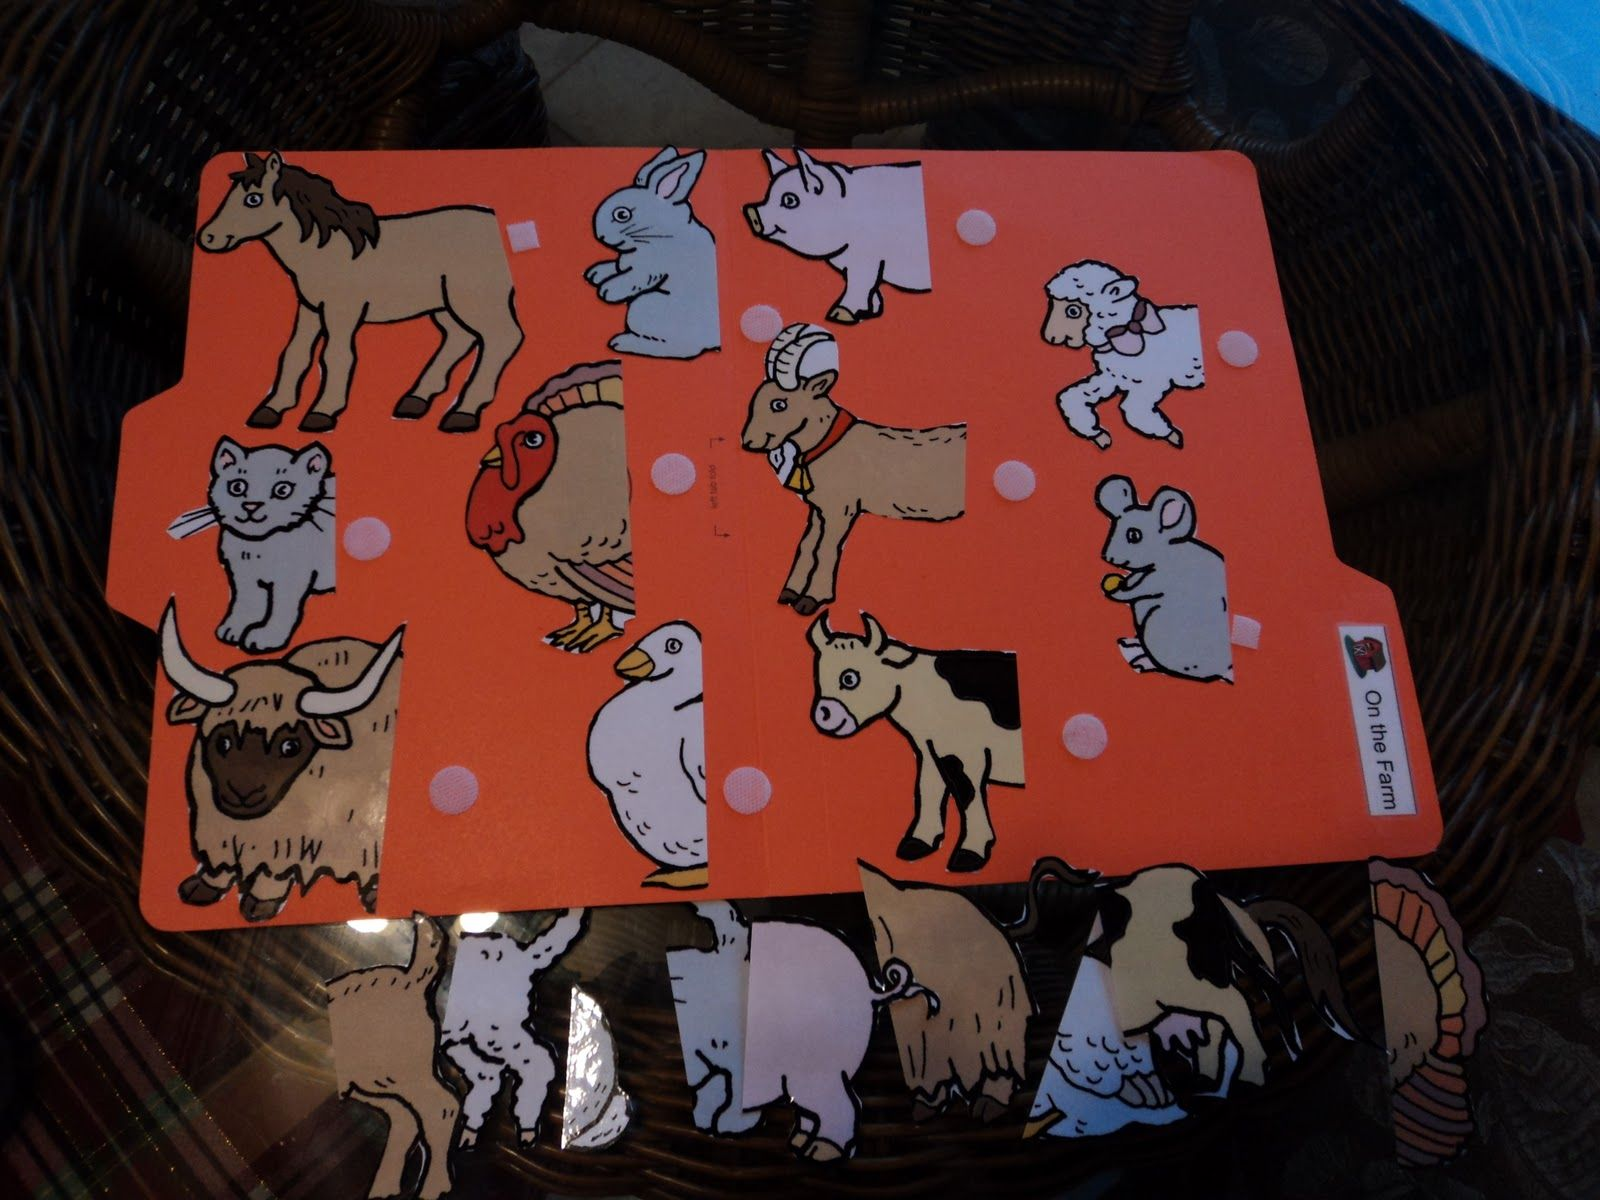 file folder games for toddlers with marta and eaton file